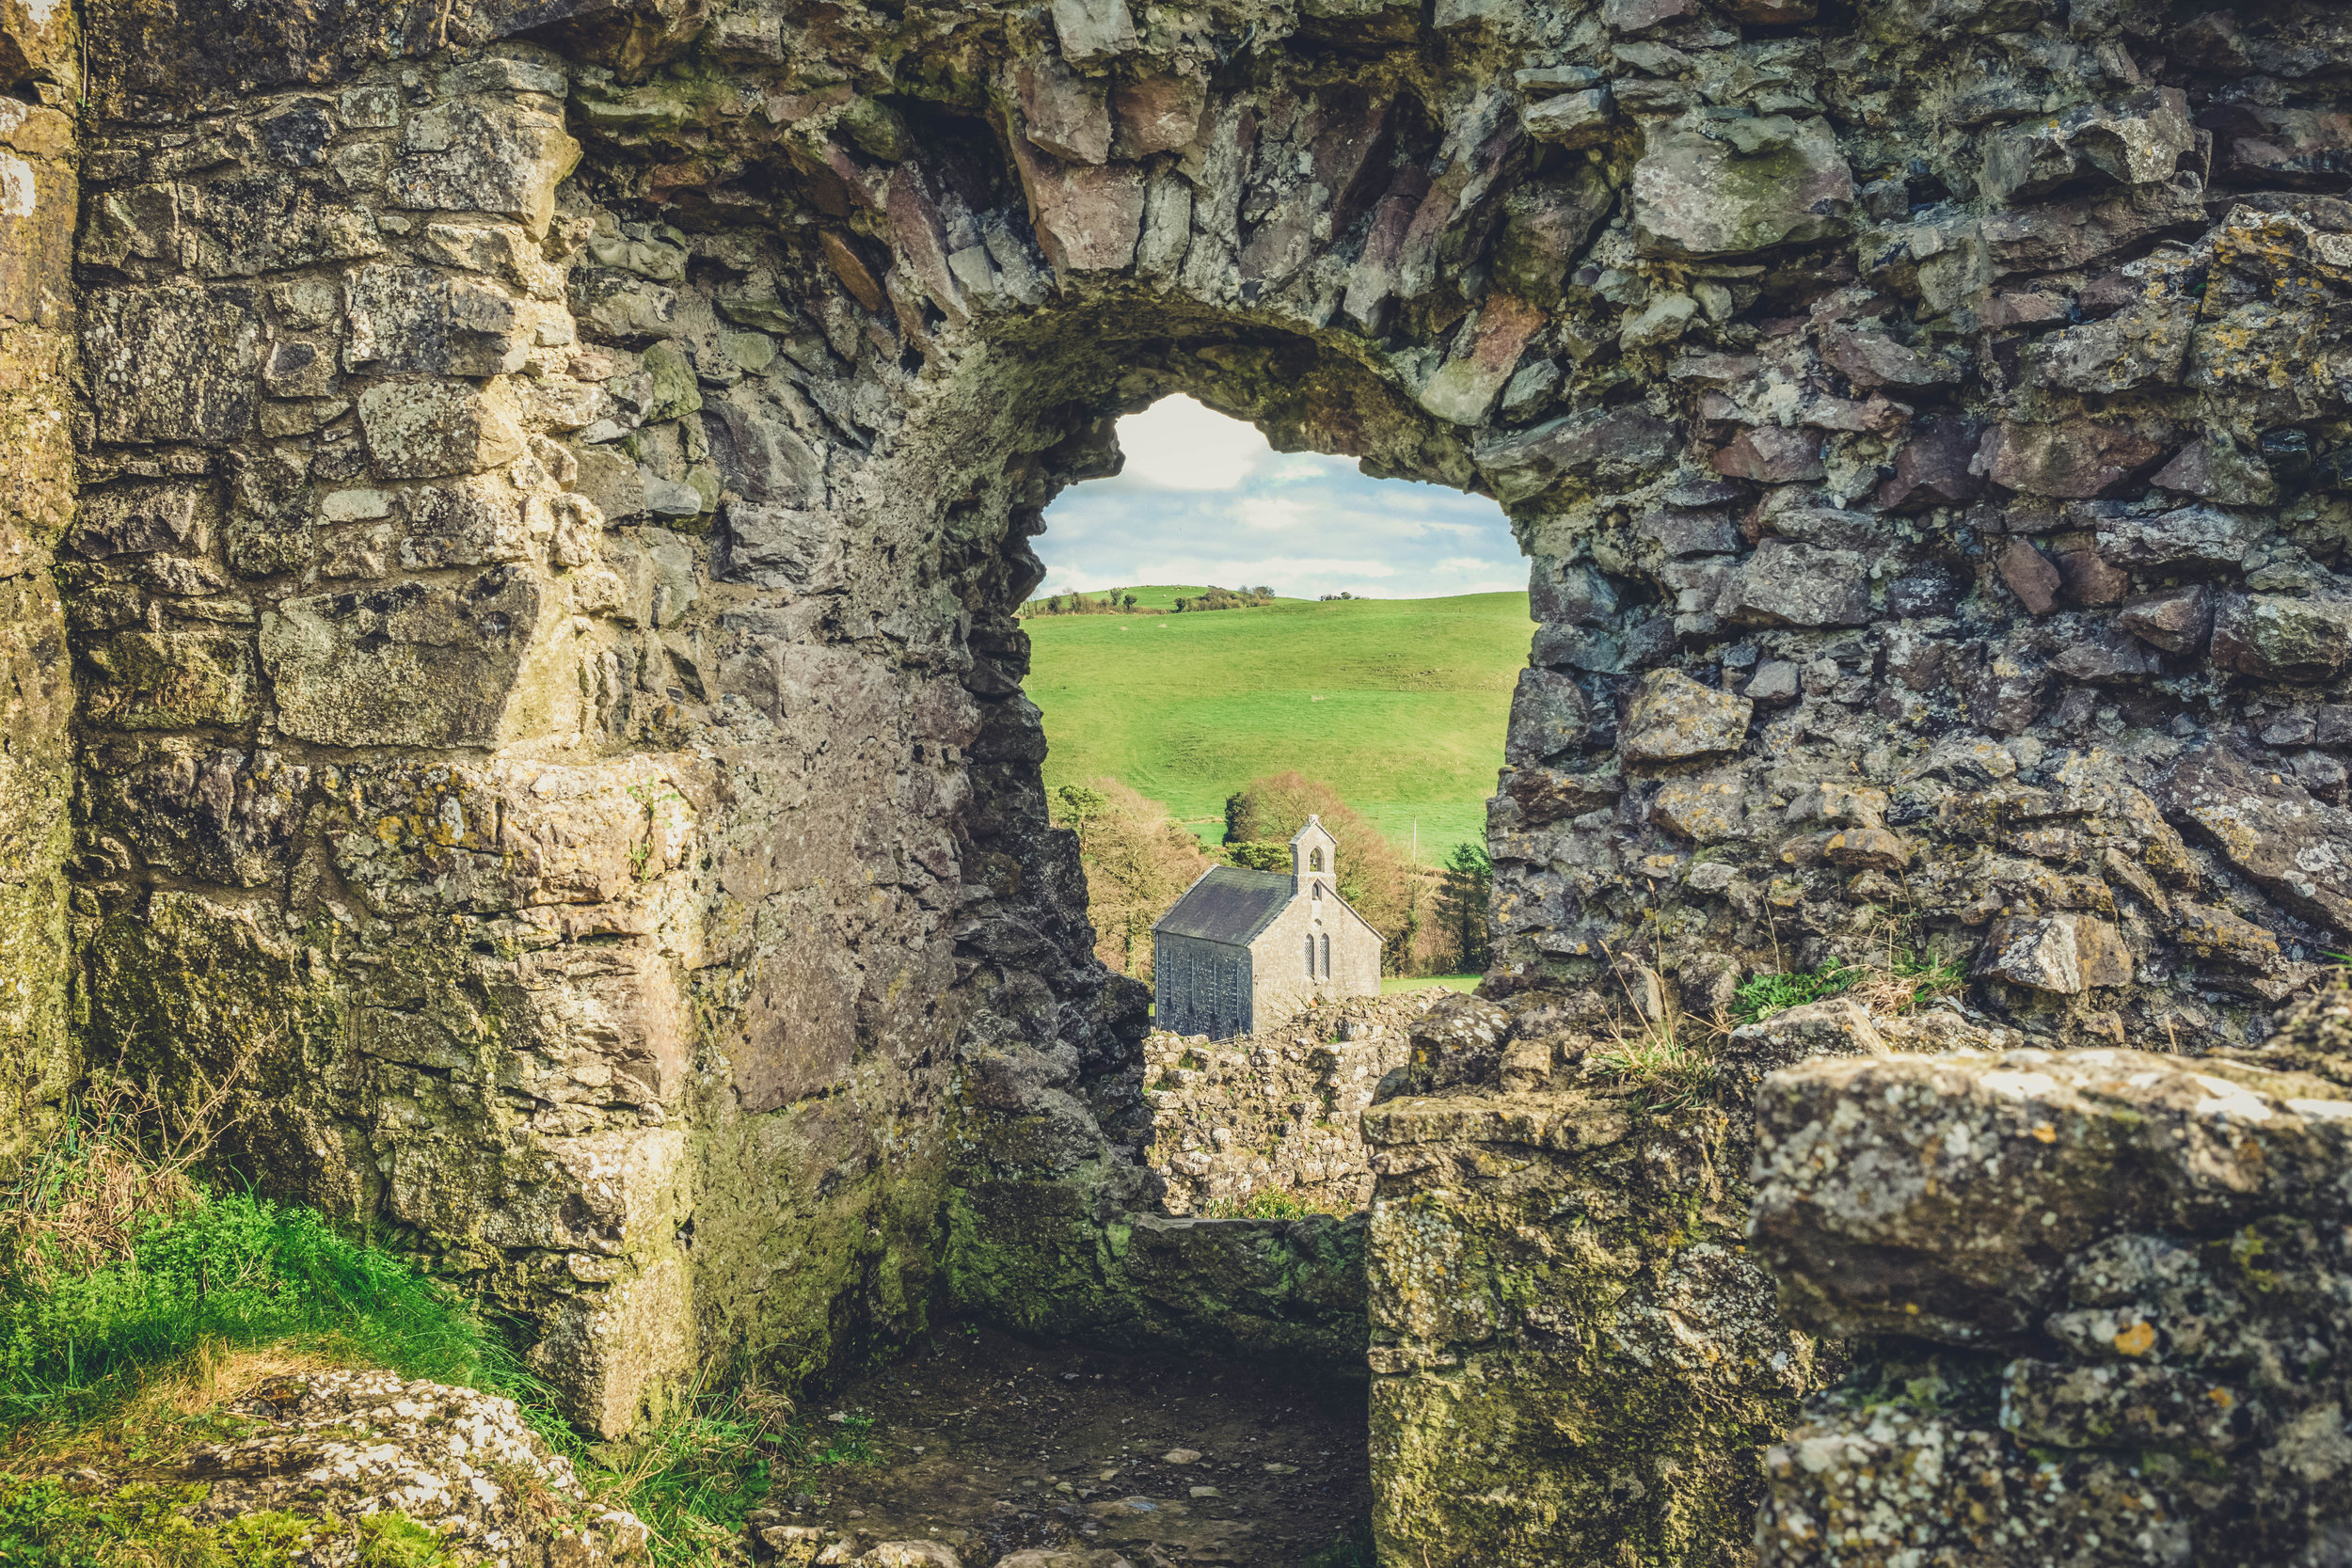 Ireland. Castle. Old castle. irish history. history. Rock of Dunamase. blue sky. rock. pathway. adventure. travel. irish counrty. green fields. castle archway. old church.jpg